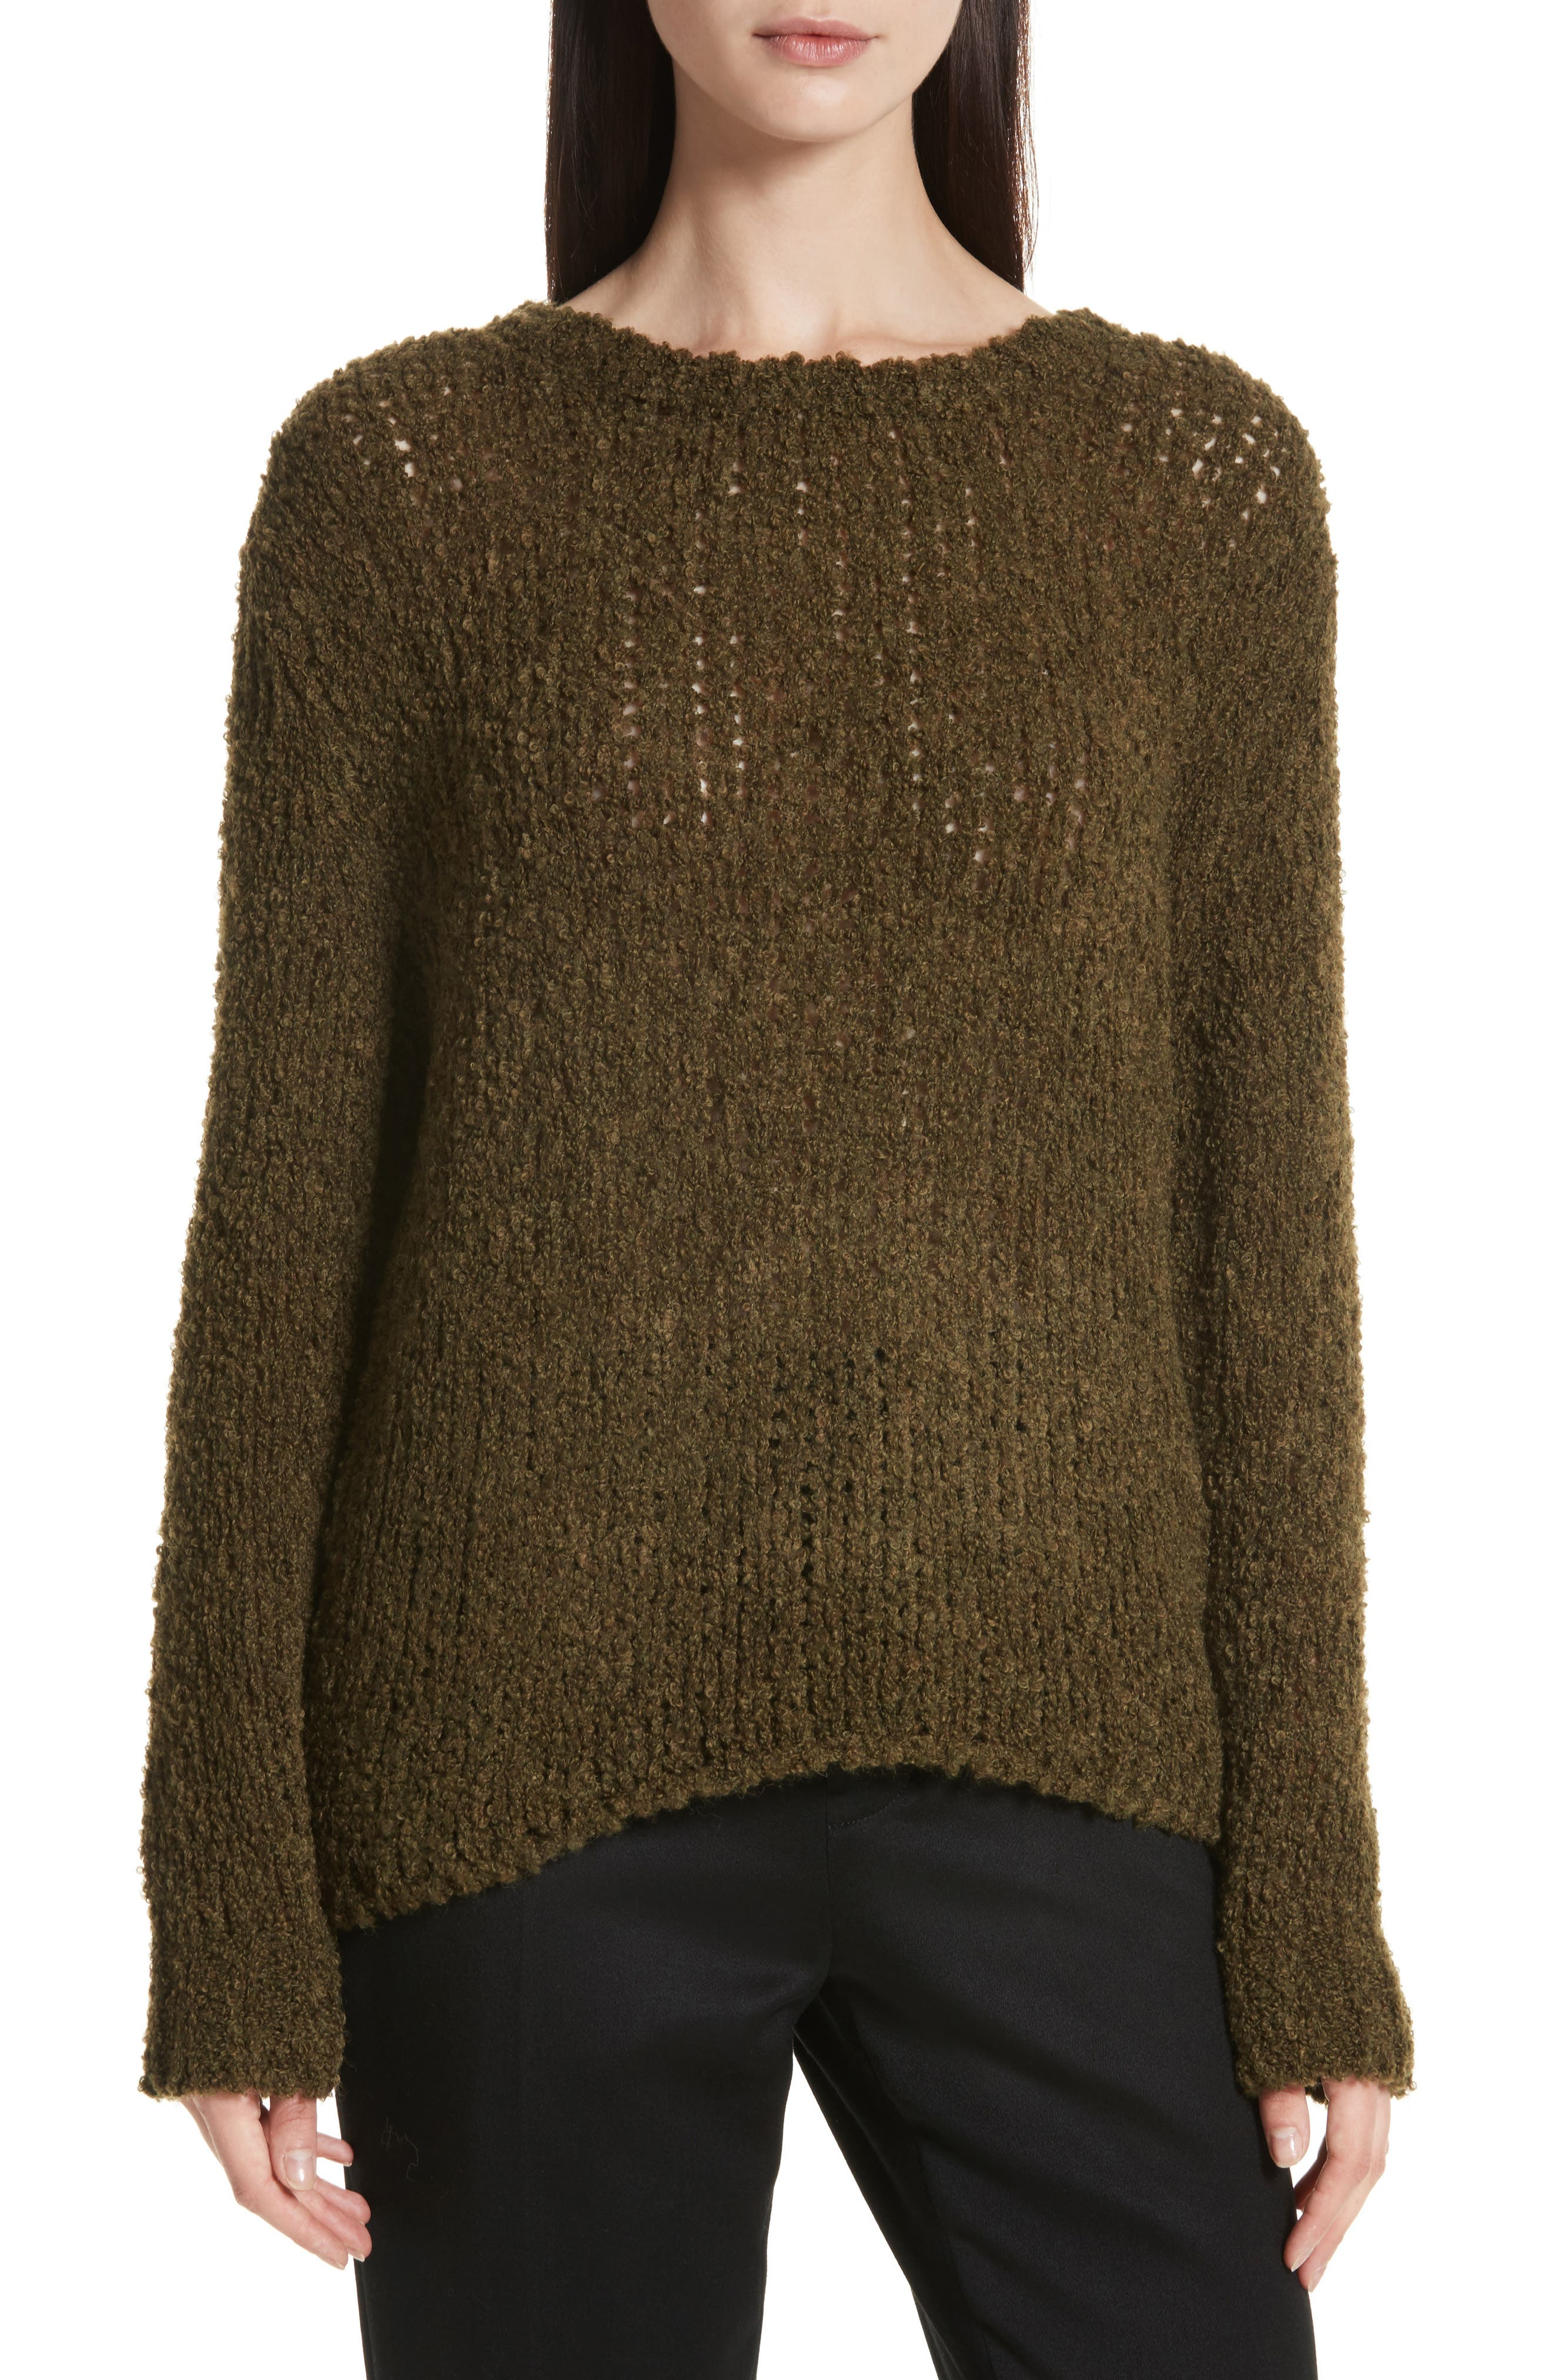 Cresent Cutout Sweater,                             Main thumbnail 1, color,                             Olive